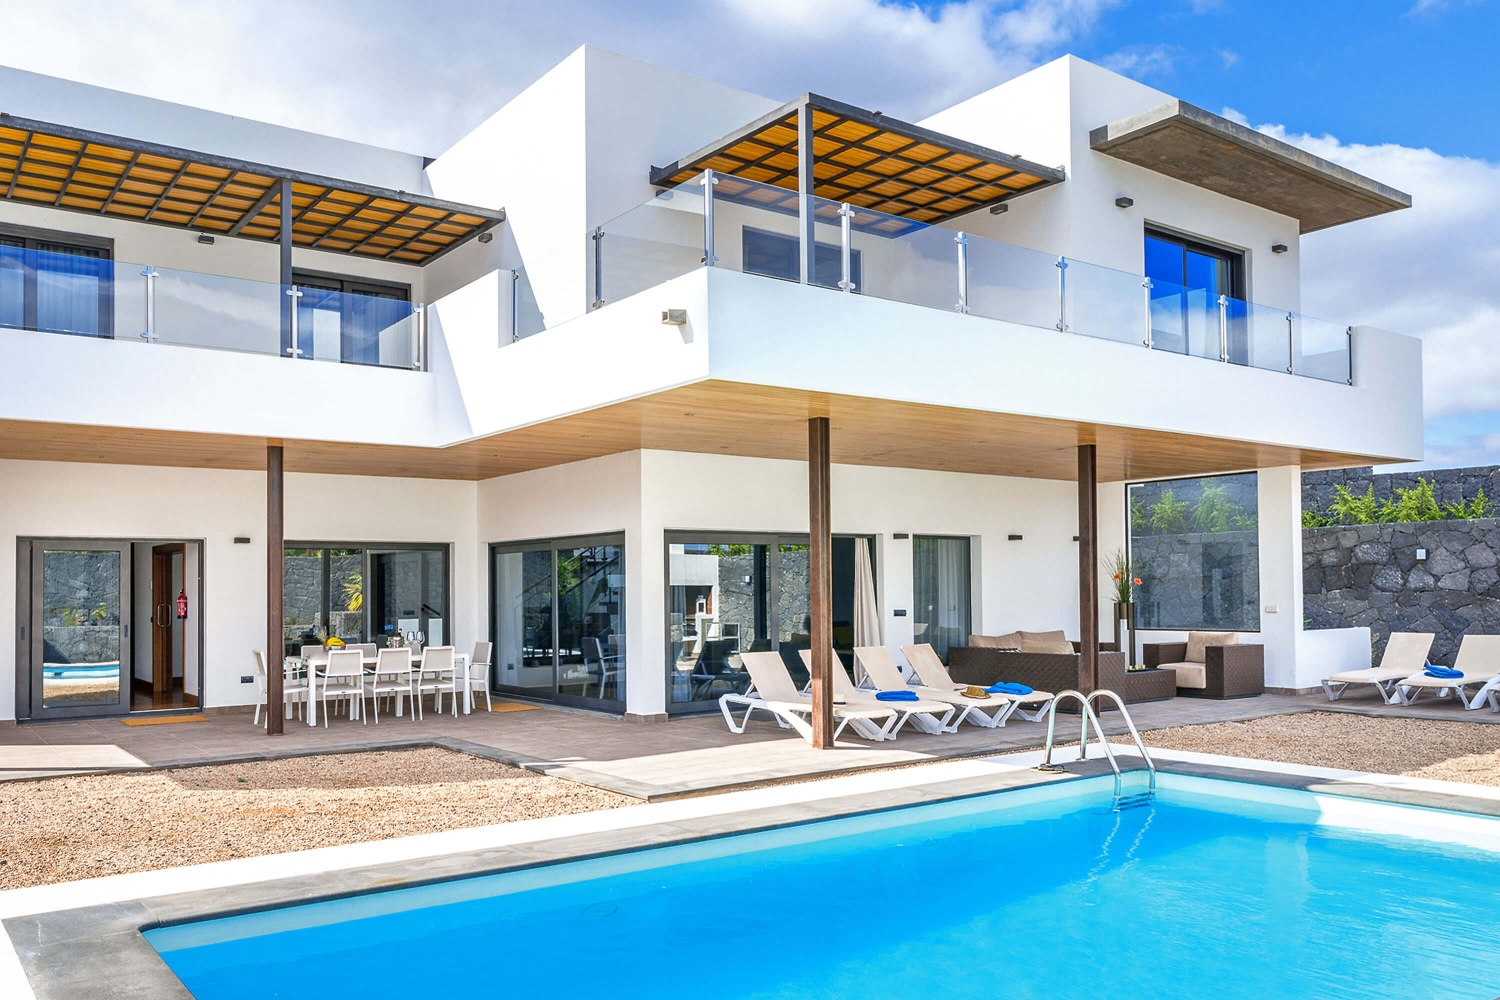 Modern and spacious villa with private heatable pool, and built-in barbecue in a residential area with sea views